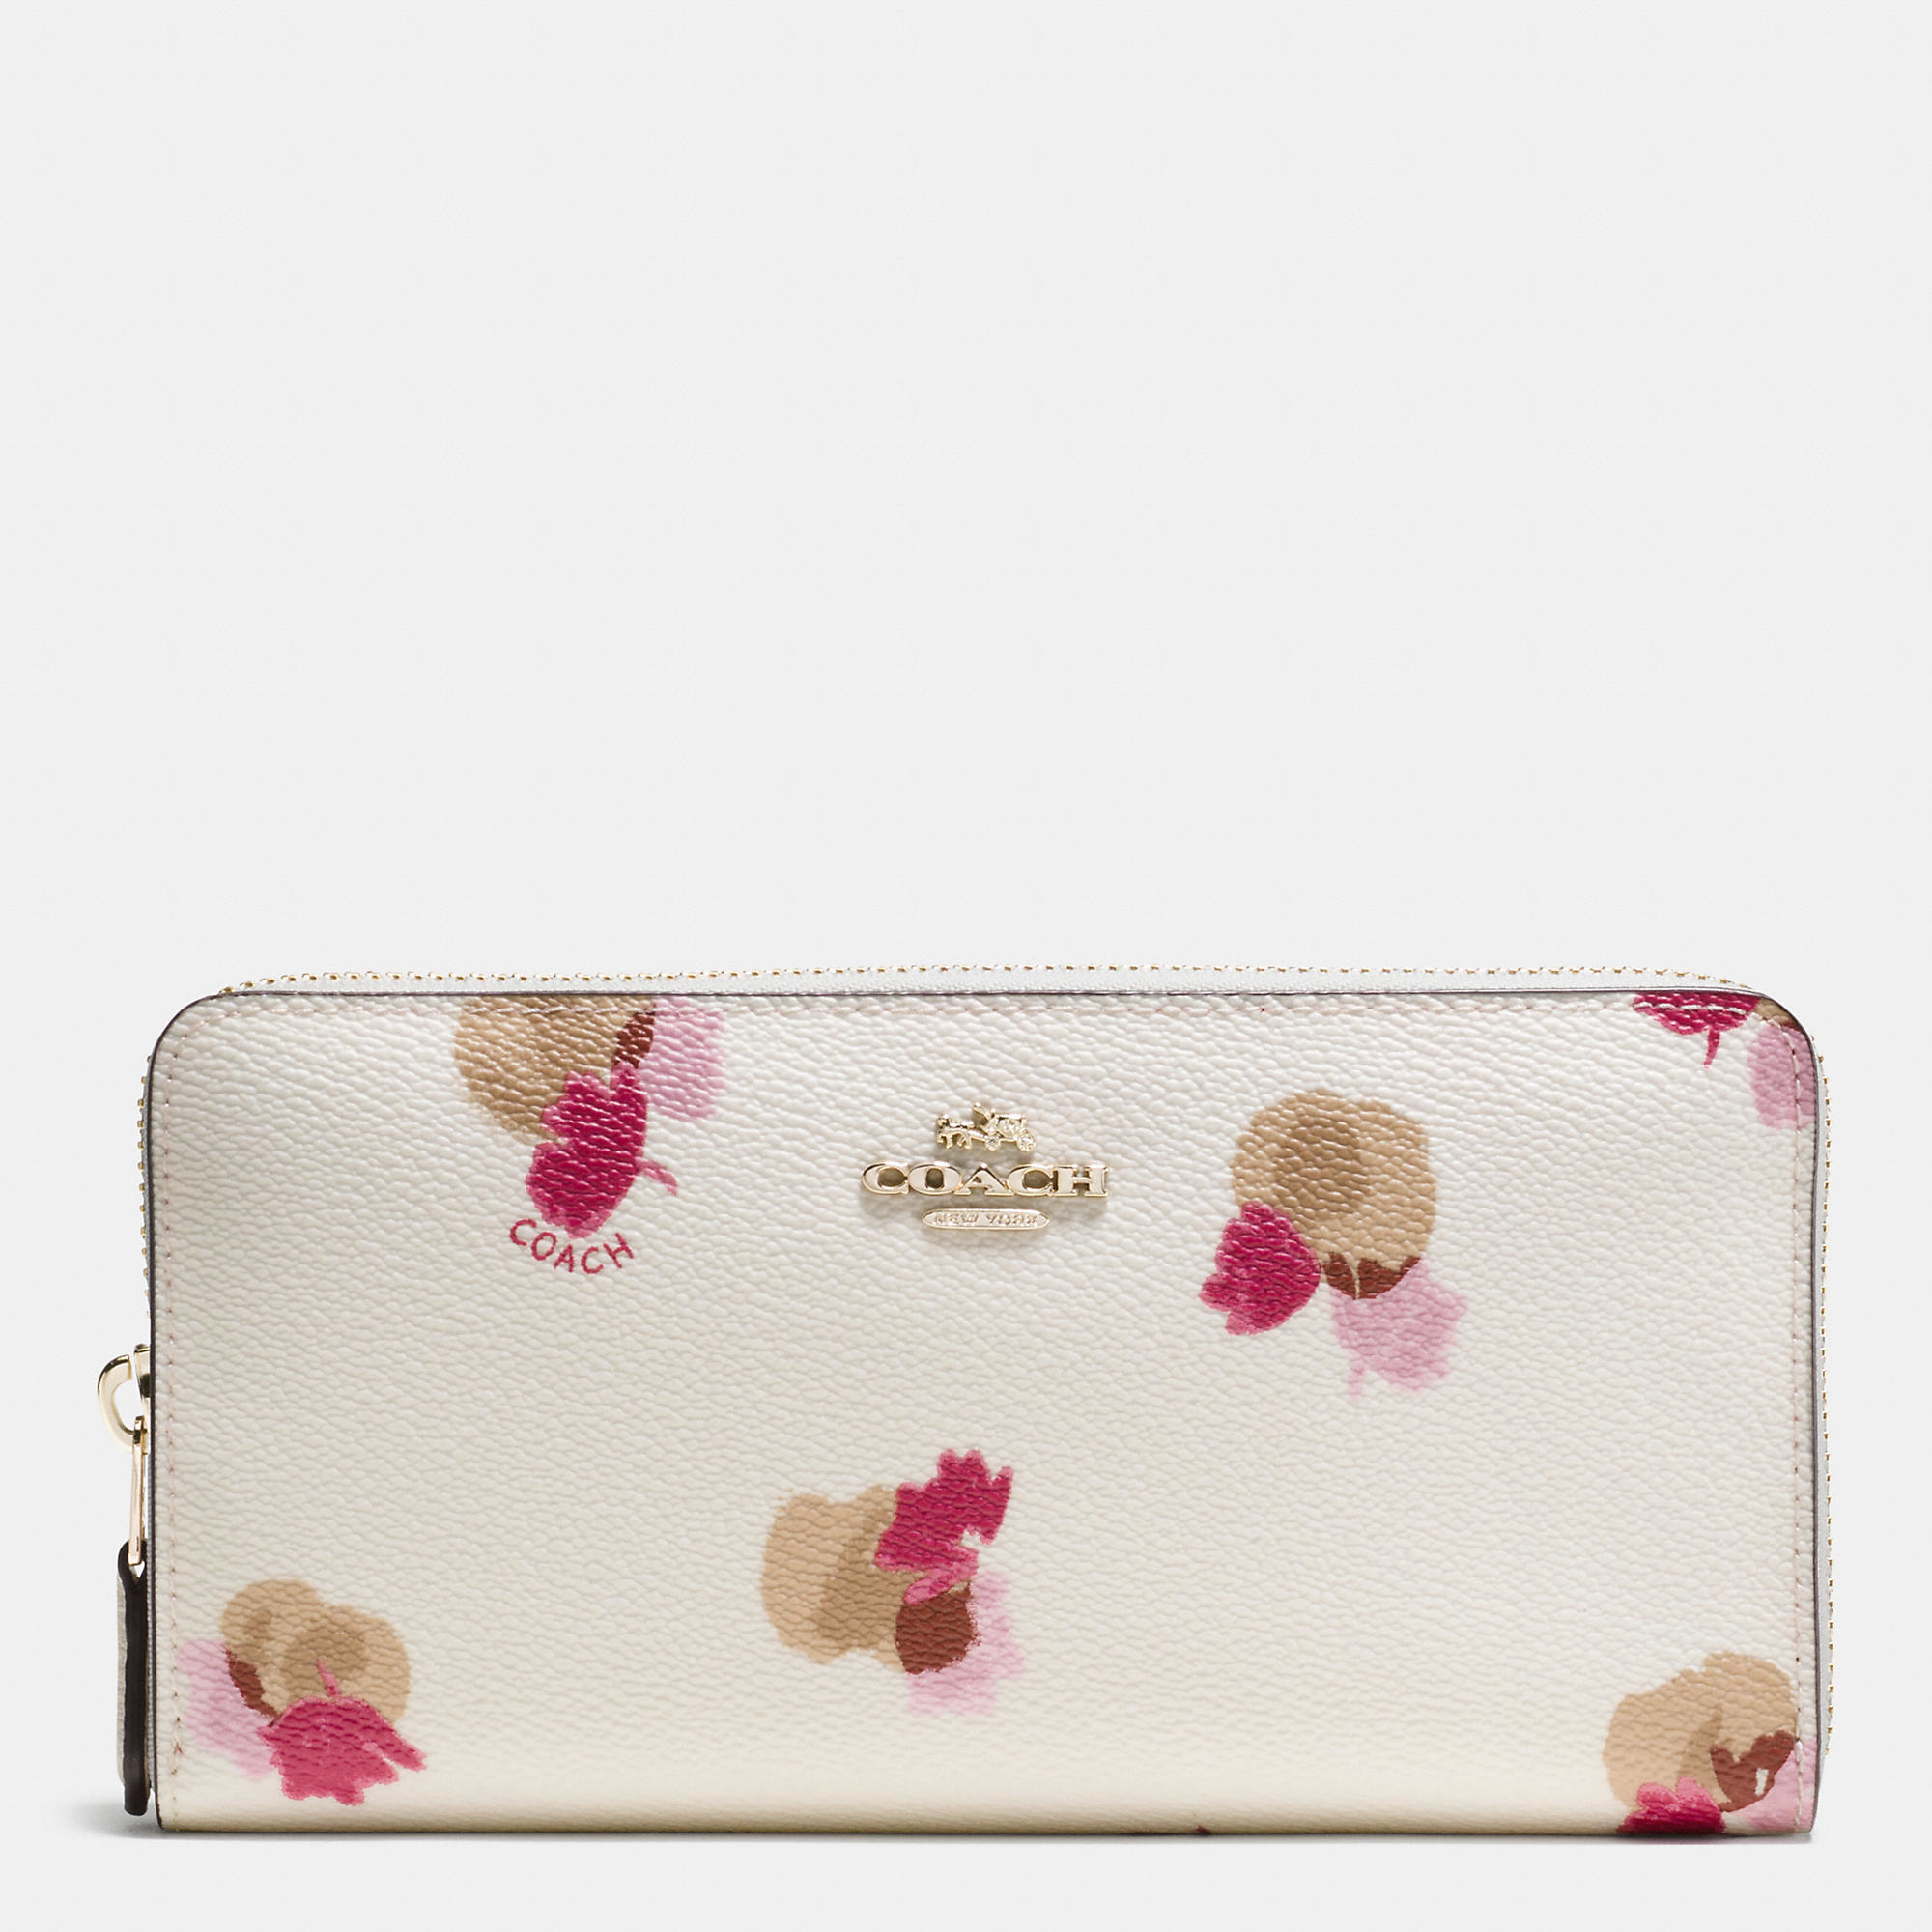 Lyst Coach Accordion Zip Wallet In Floral Print Coated Canvas In Pink